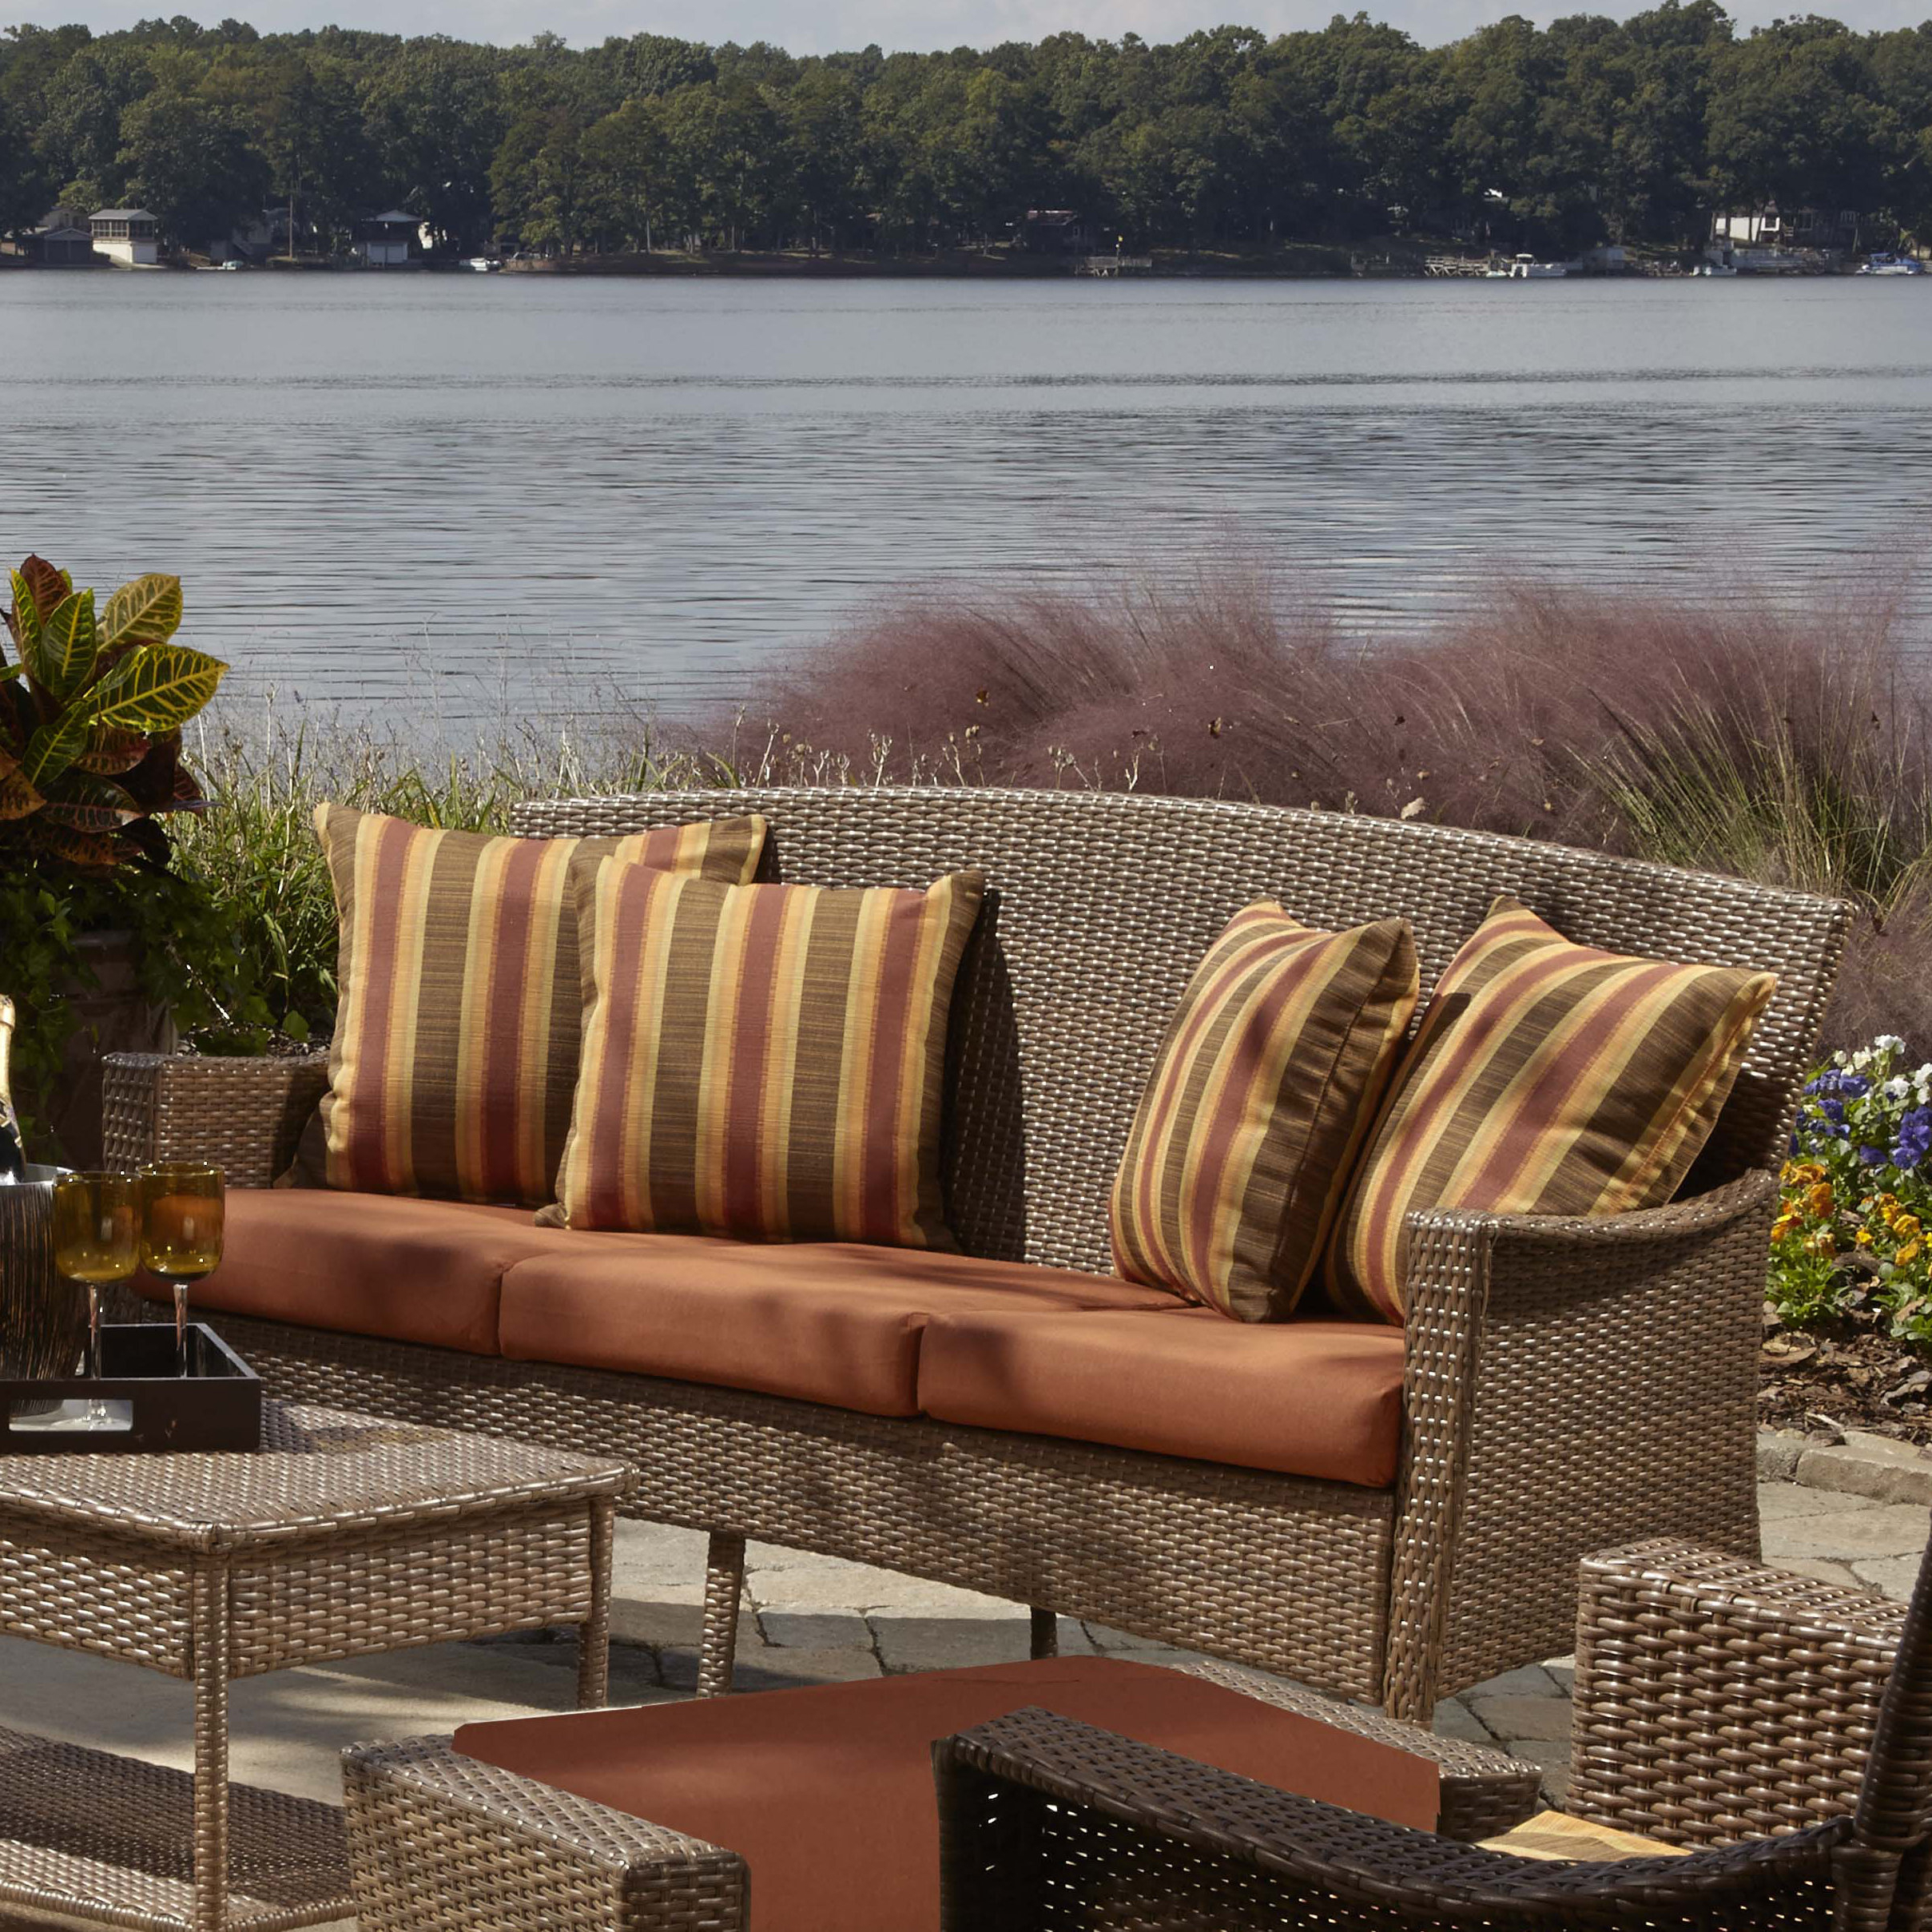 Newest Katzer Patio Sofas With Cushions Within Key Biscayne Patio Sofa With Cushions (View 17 of 20)